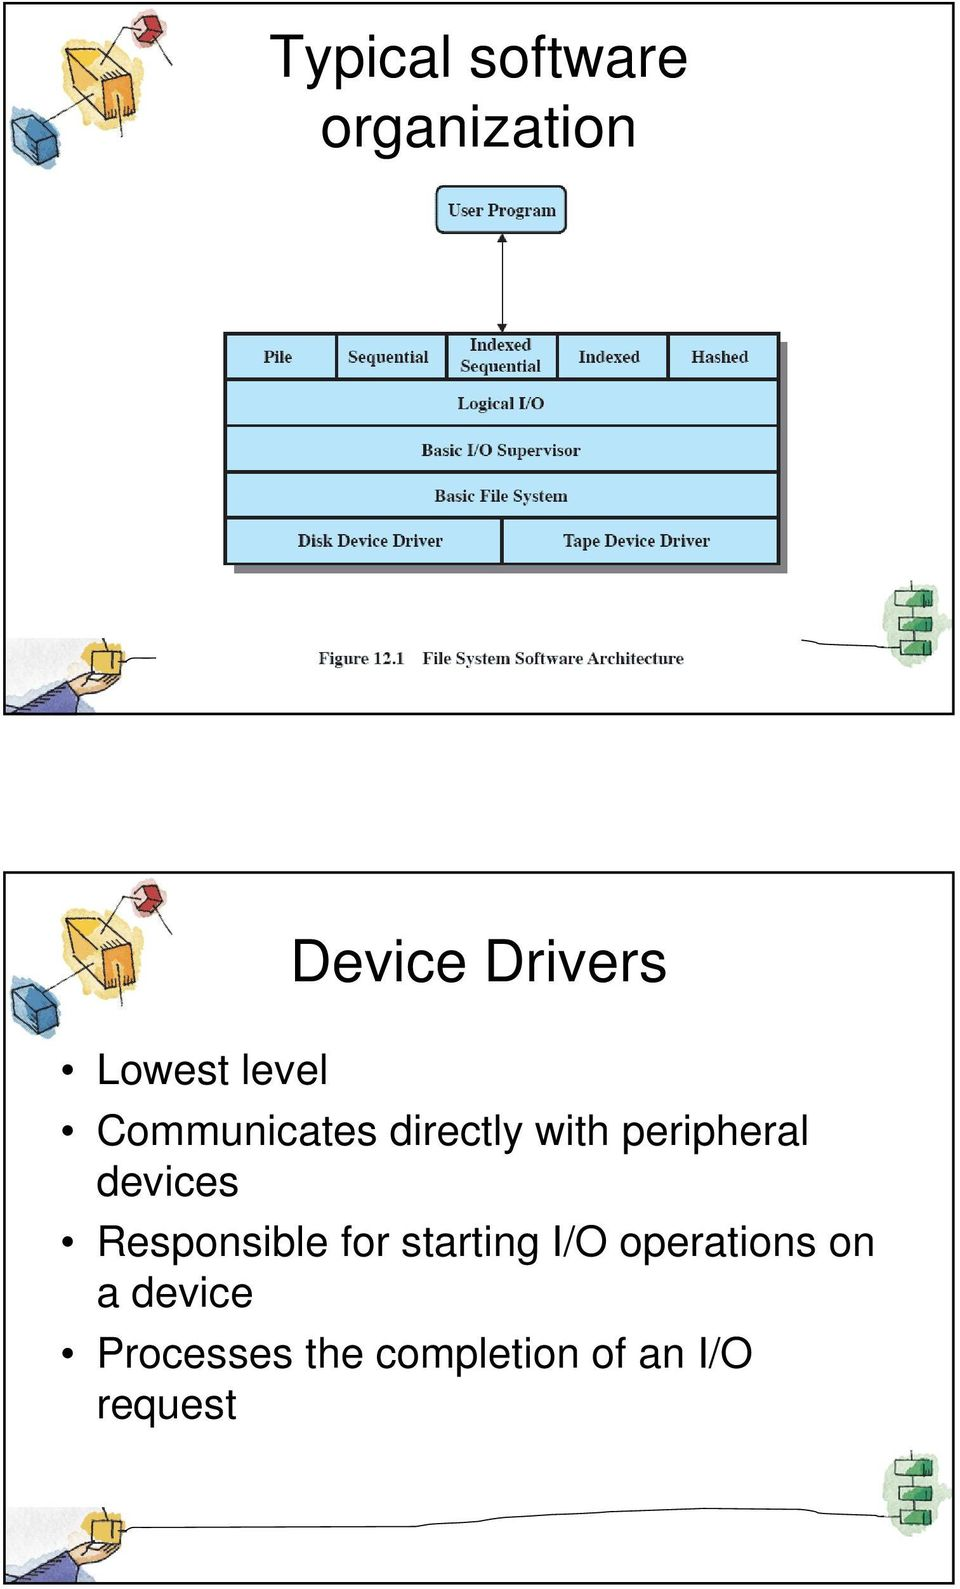 devices Responsible for starting I/O operations